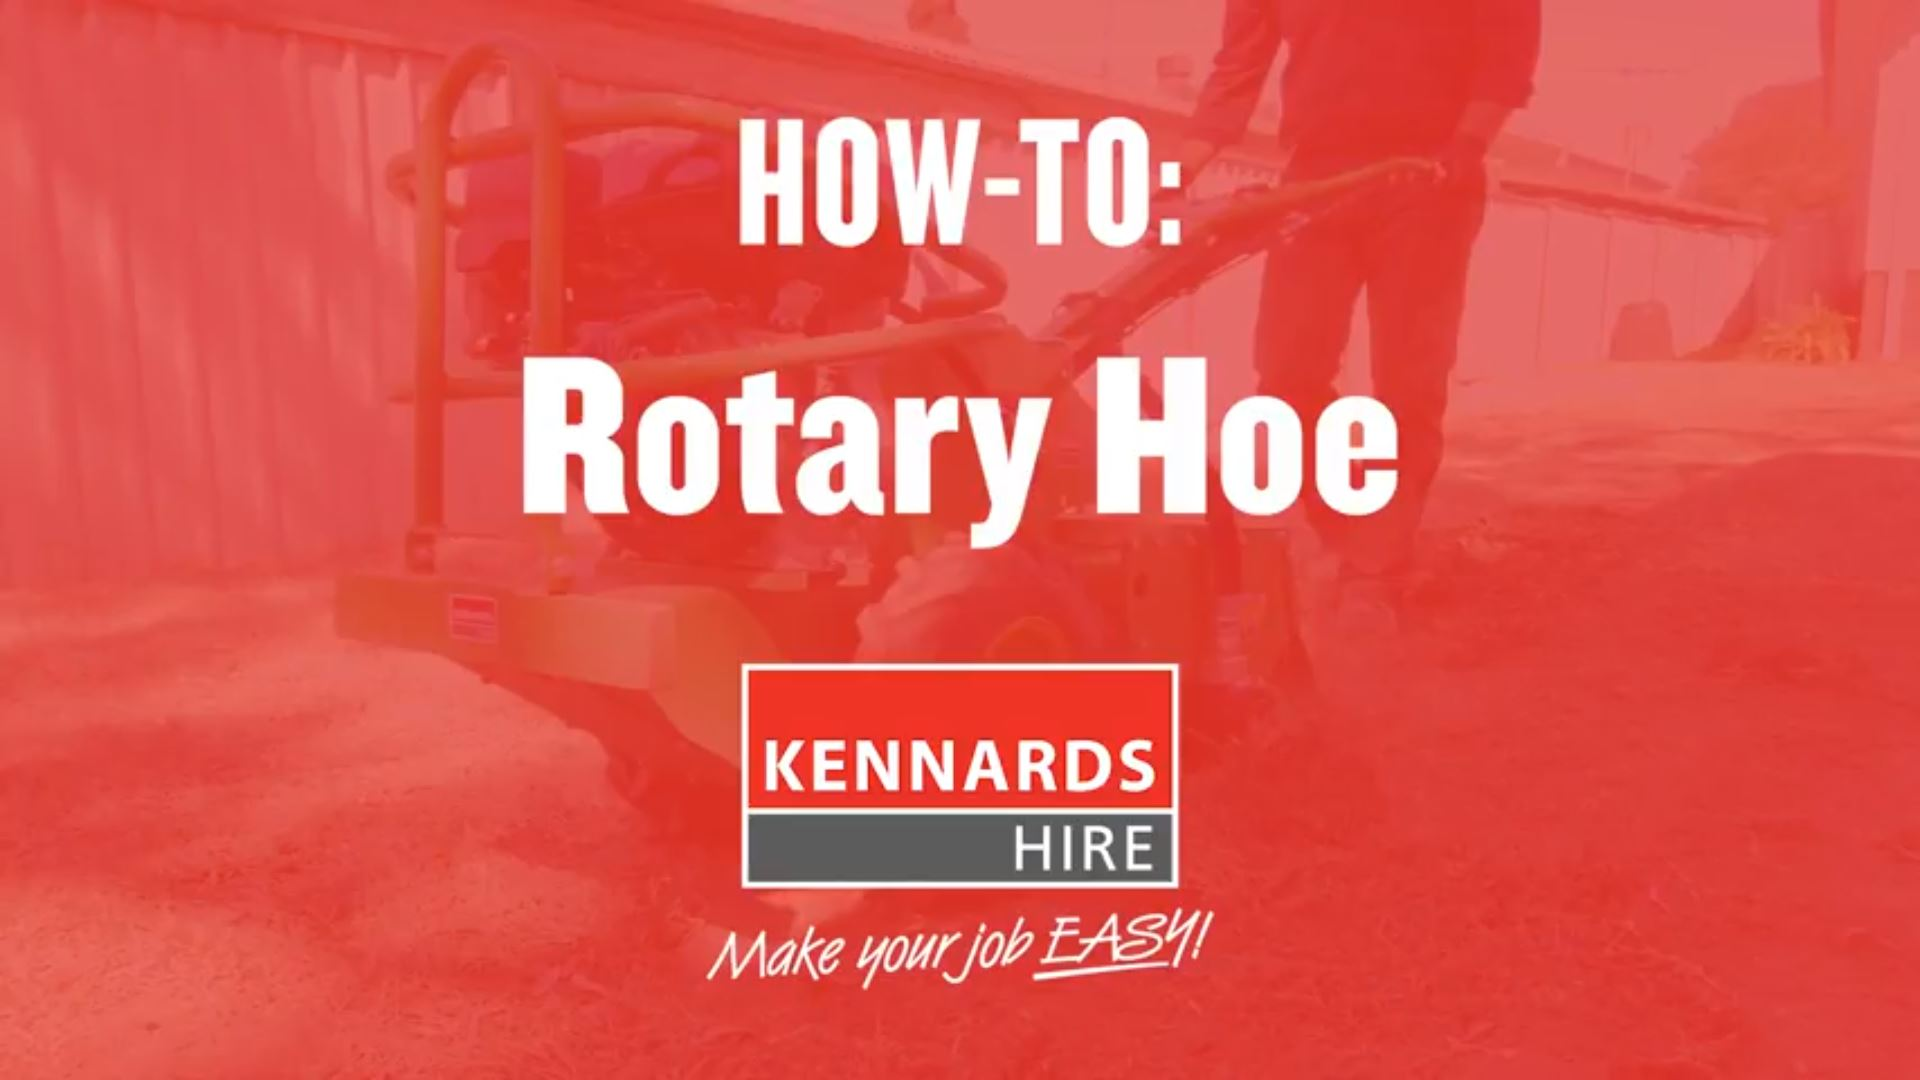 How to use a Rotary Hoe